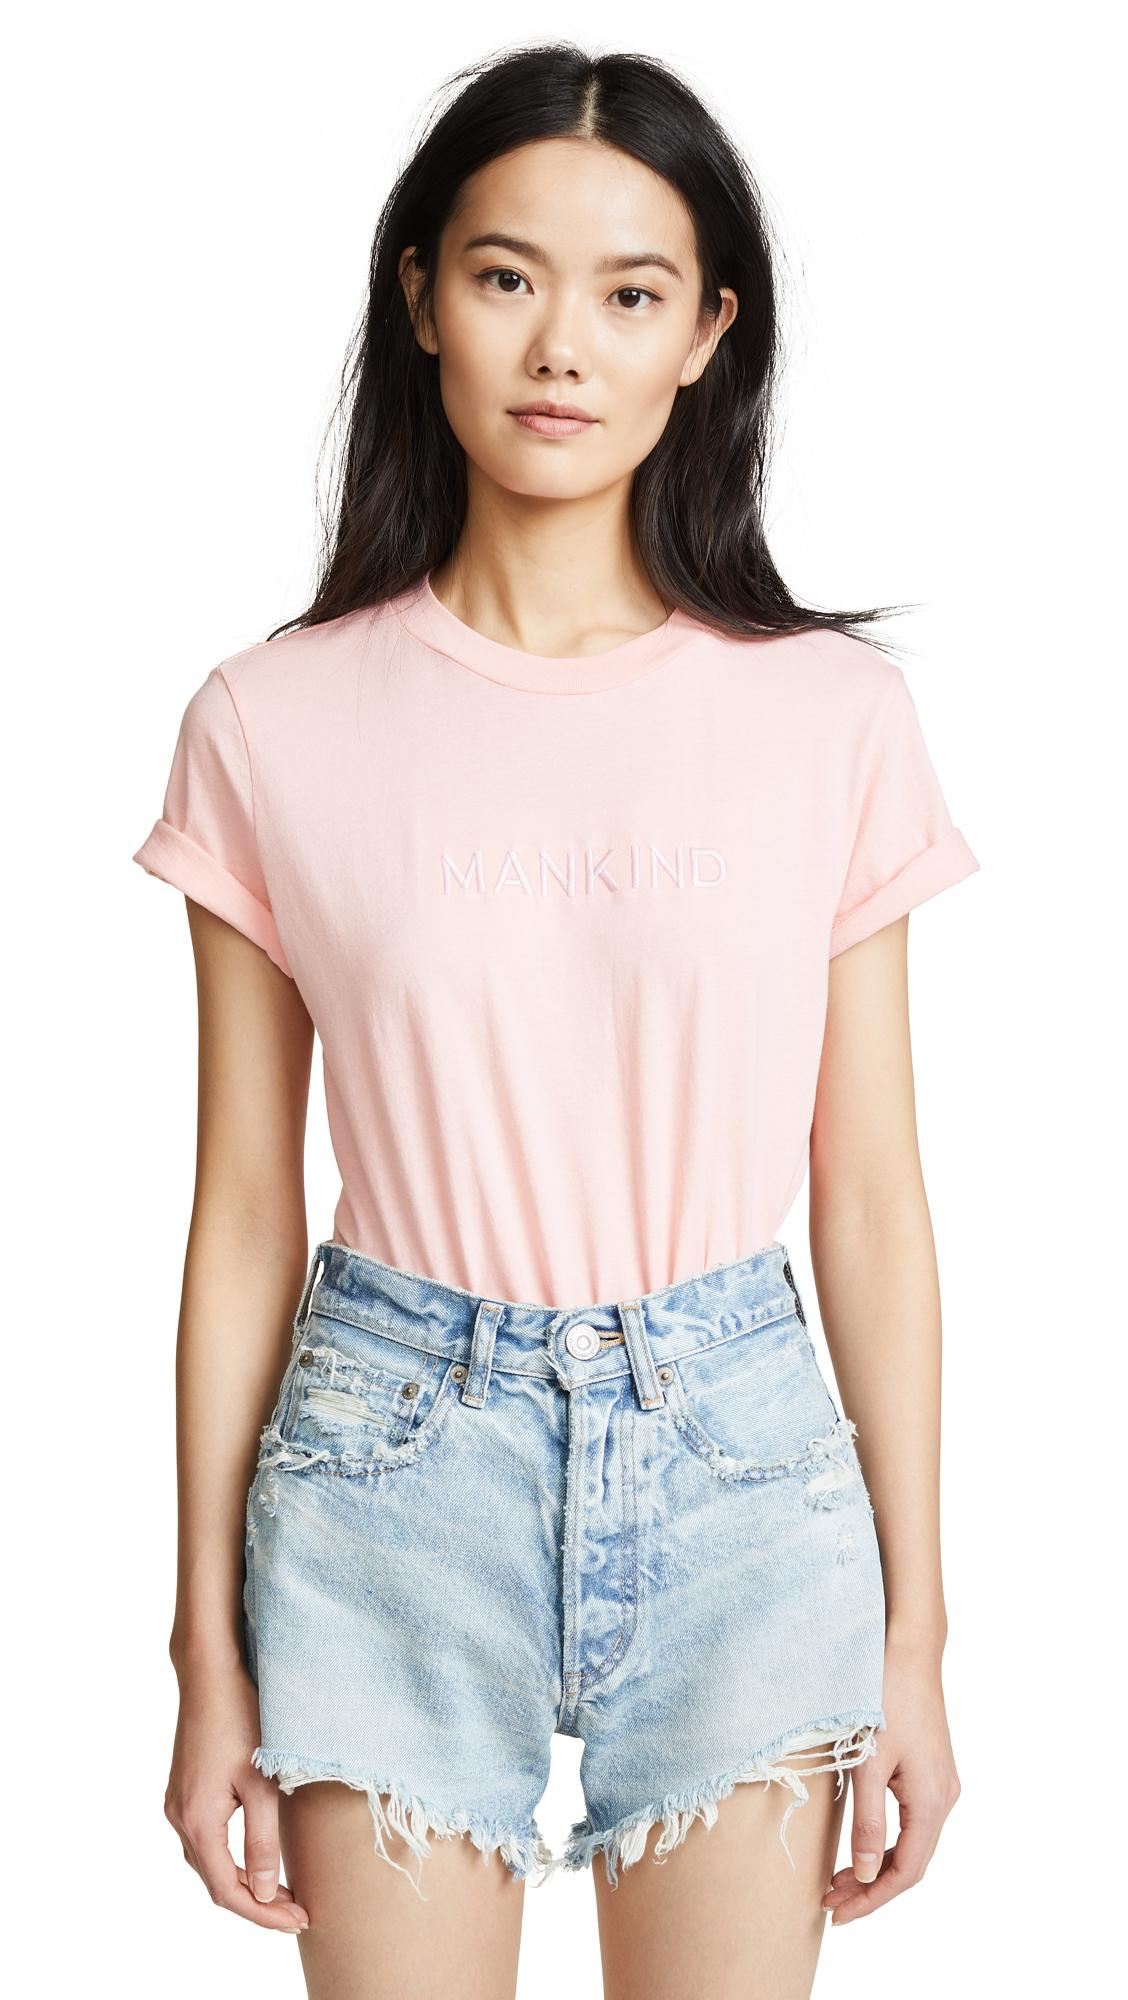 7 For All Mankind Mankind Baby Tee With Embroidery In Quartz Pink/pink